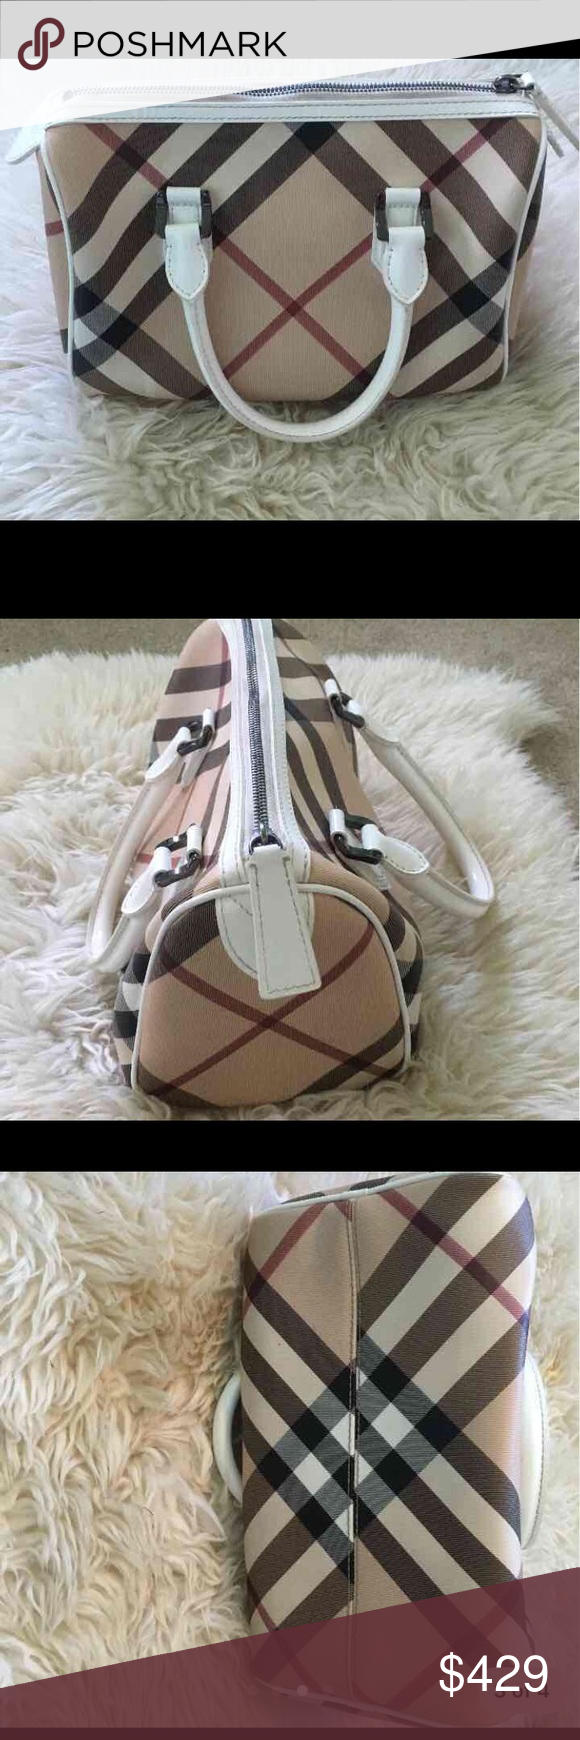 c2de13a94500 Authentic Burberry Handbag BURBERRY Nova Check Small Chester Bowling Bag In  white. In super great condition! Burberry Bags Totes